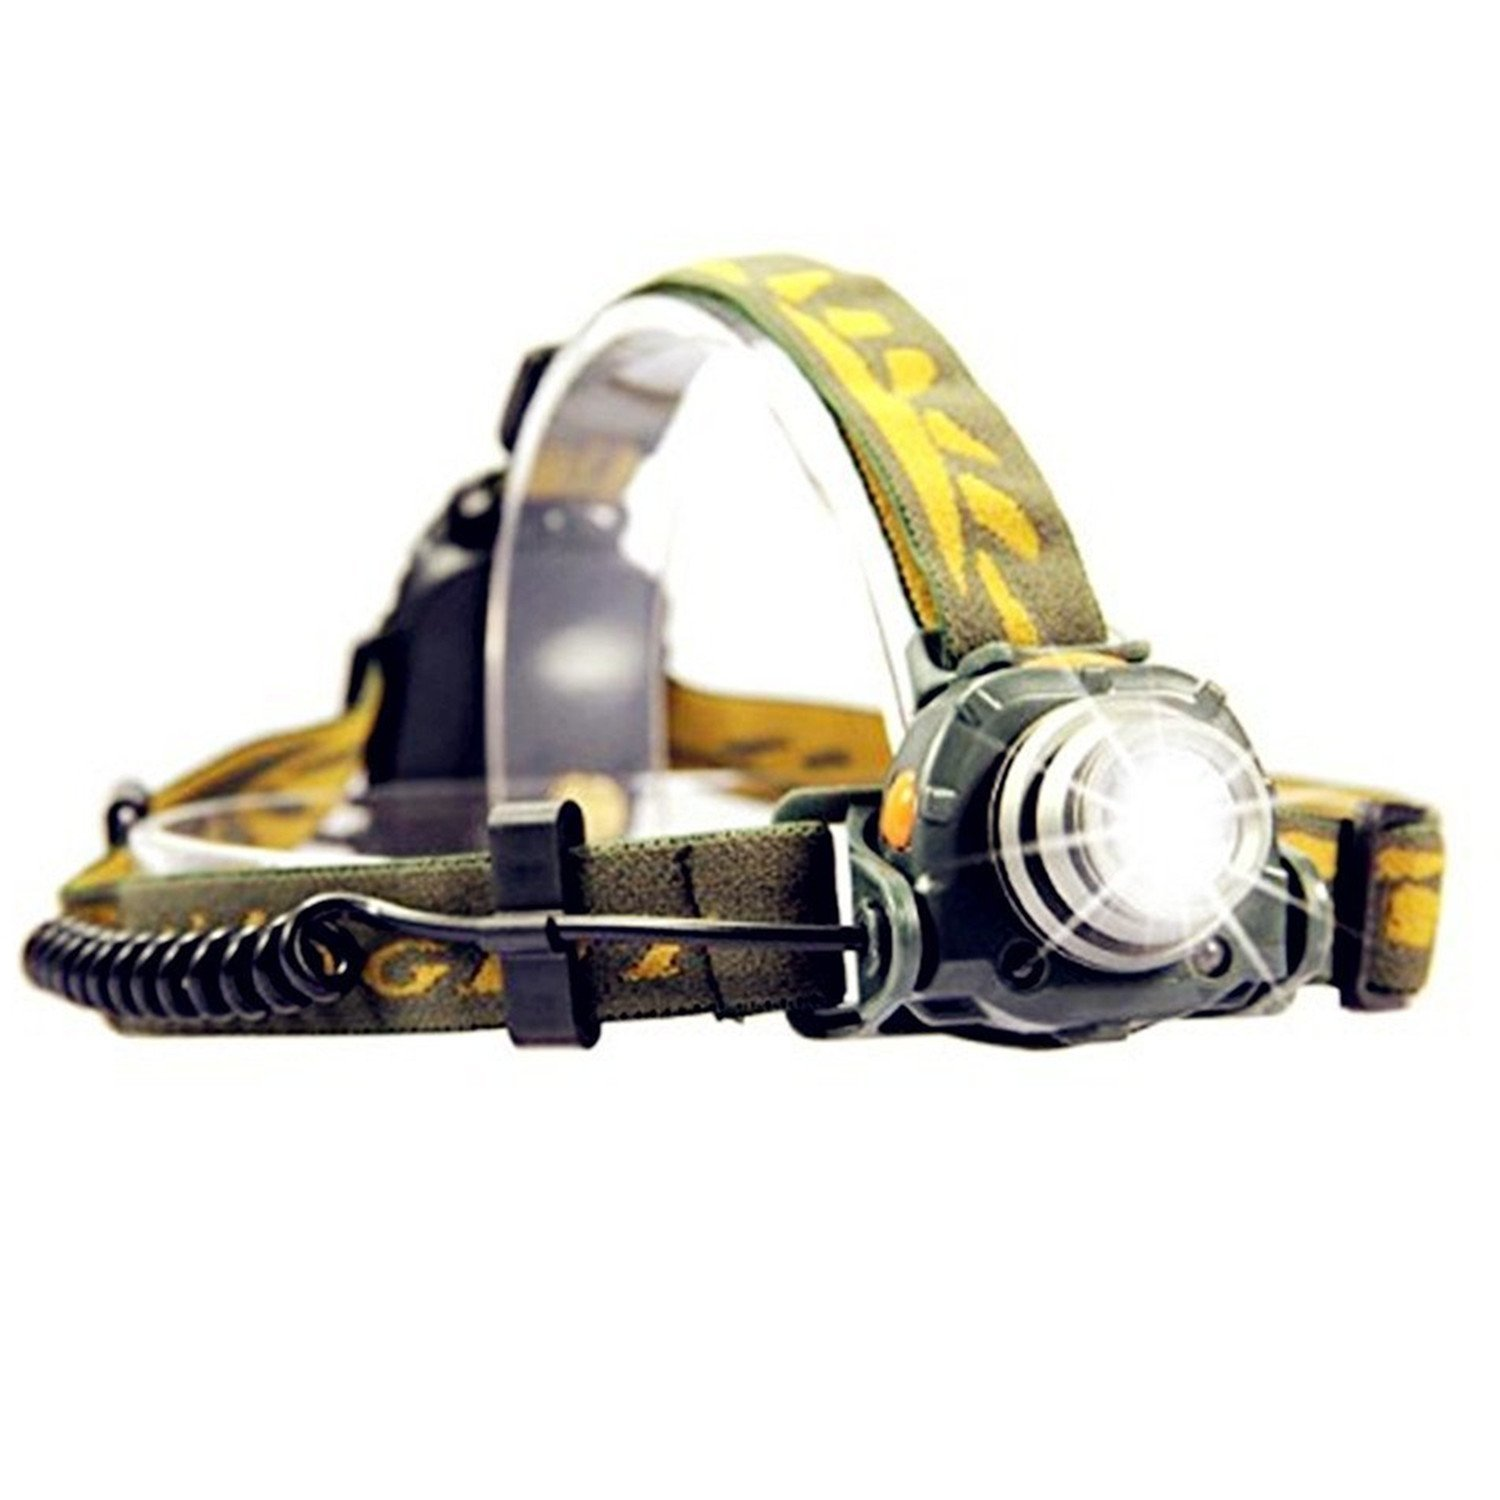 OxyLED MH20 Ultra Bright Headlamp